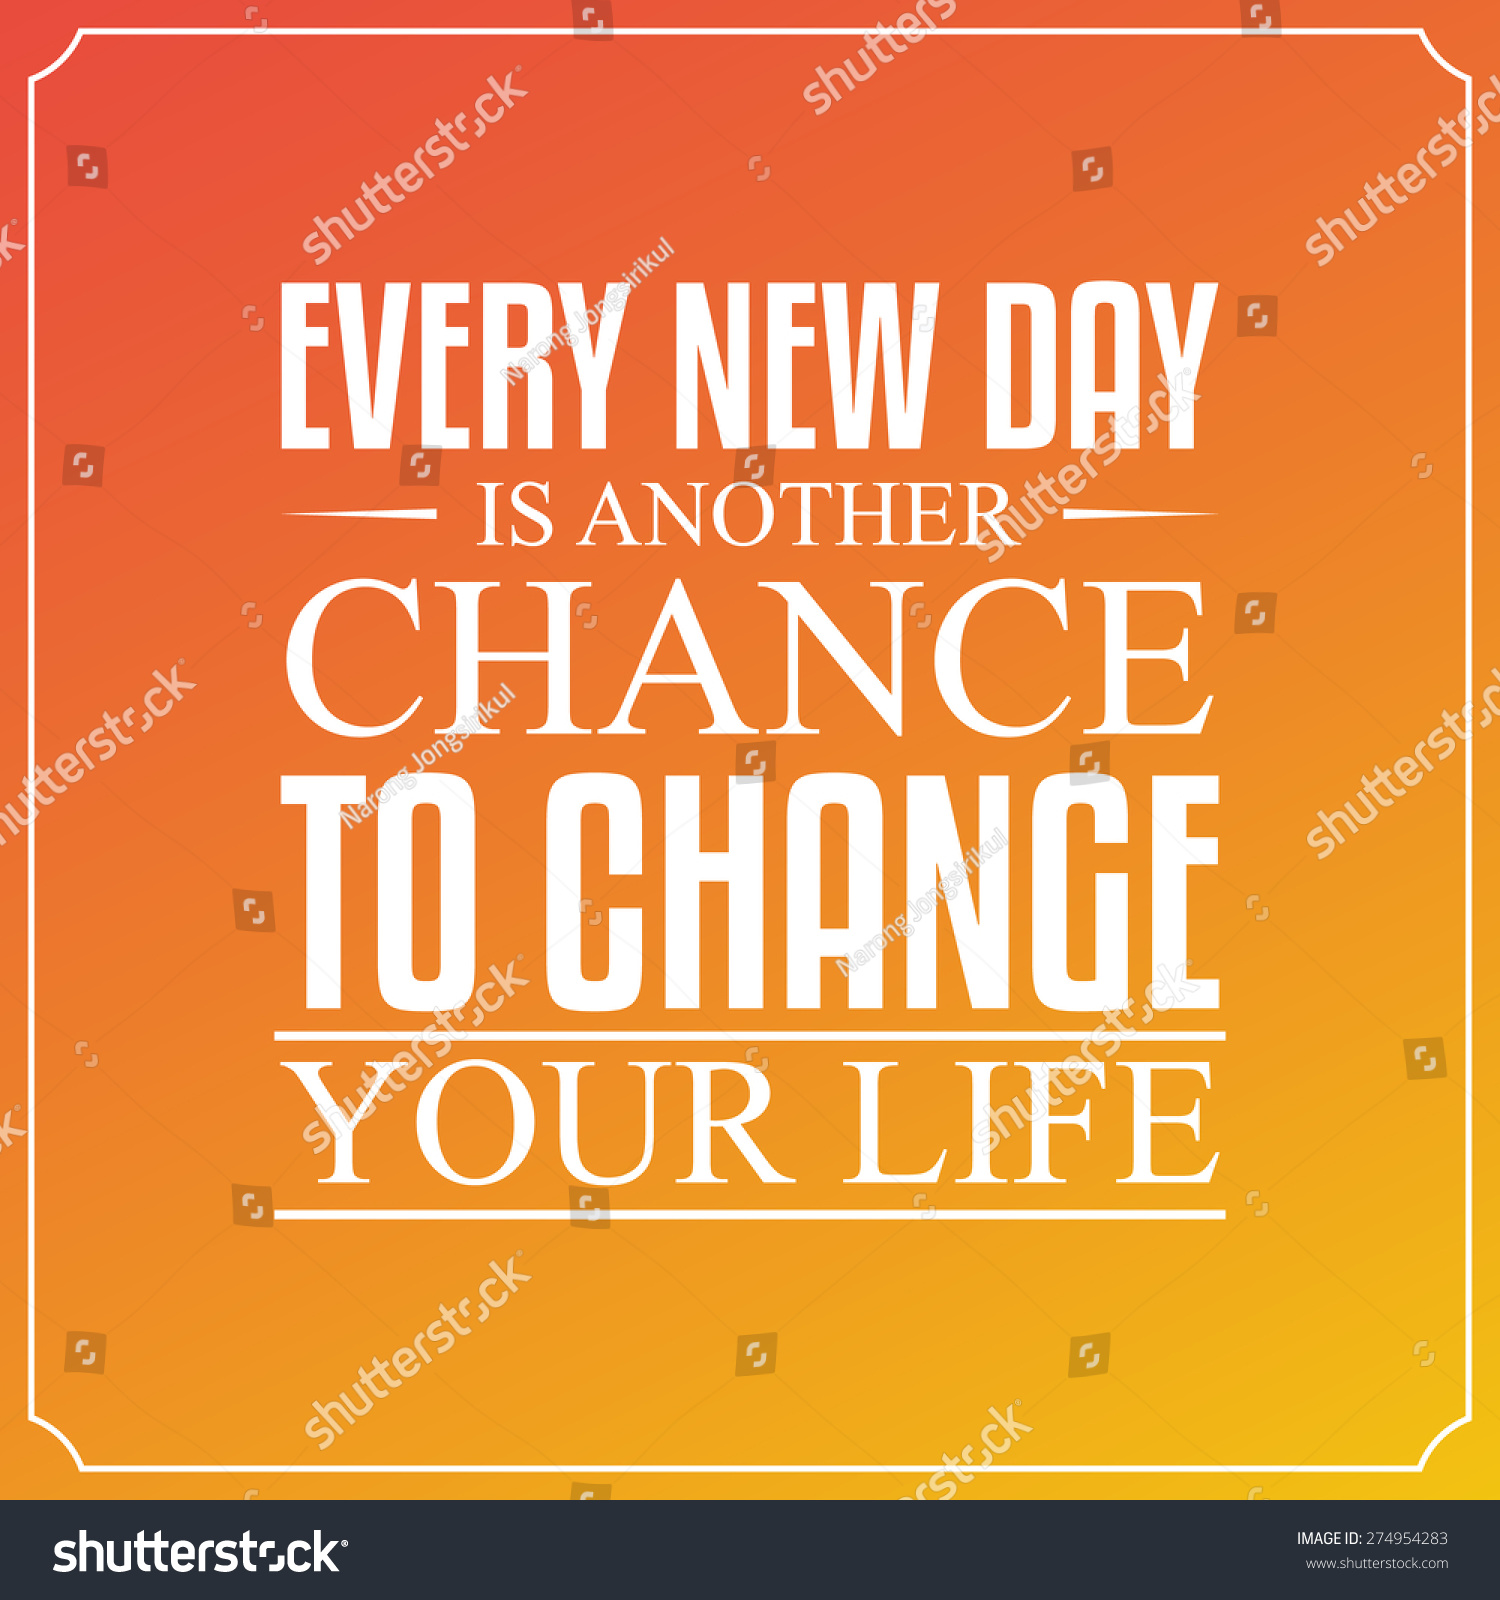 Another Day Of Life Quotes: Every New Day Another Chance Change Stock Vector 274954283